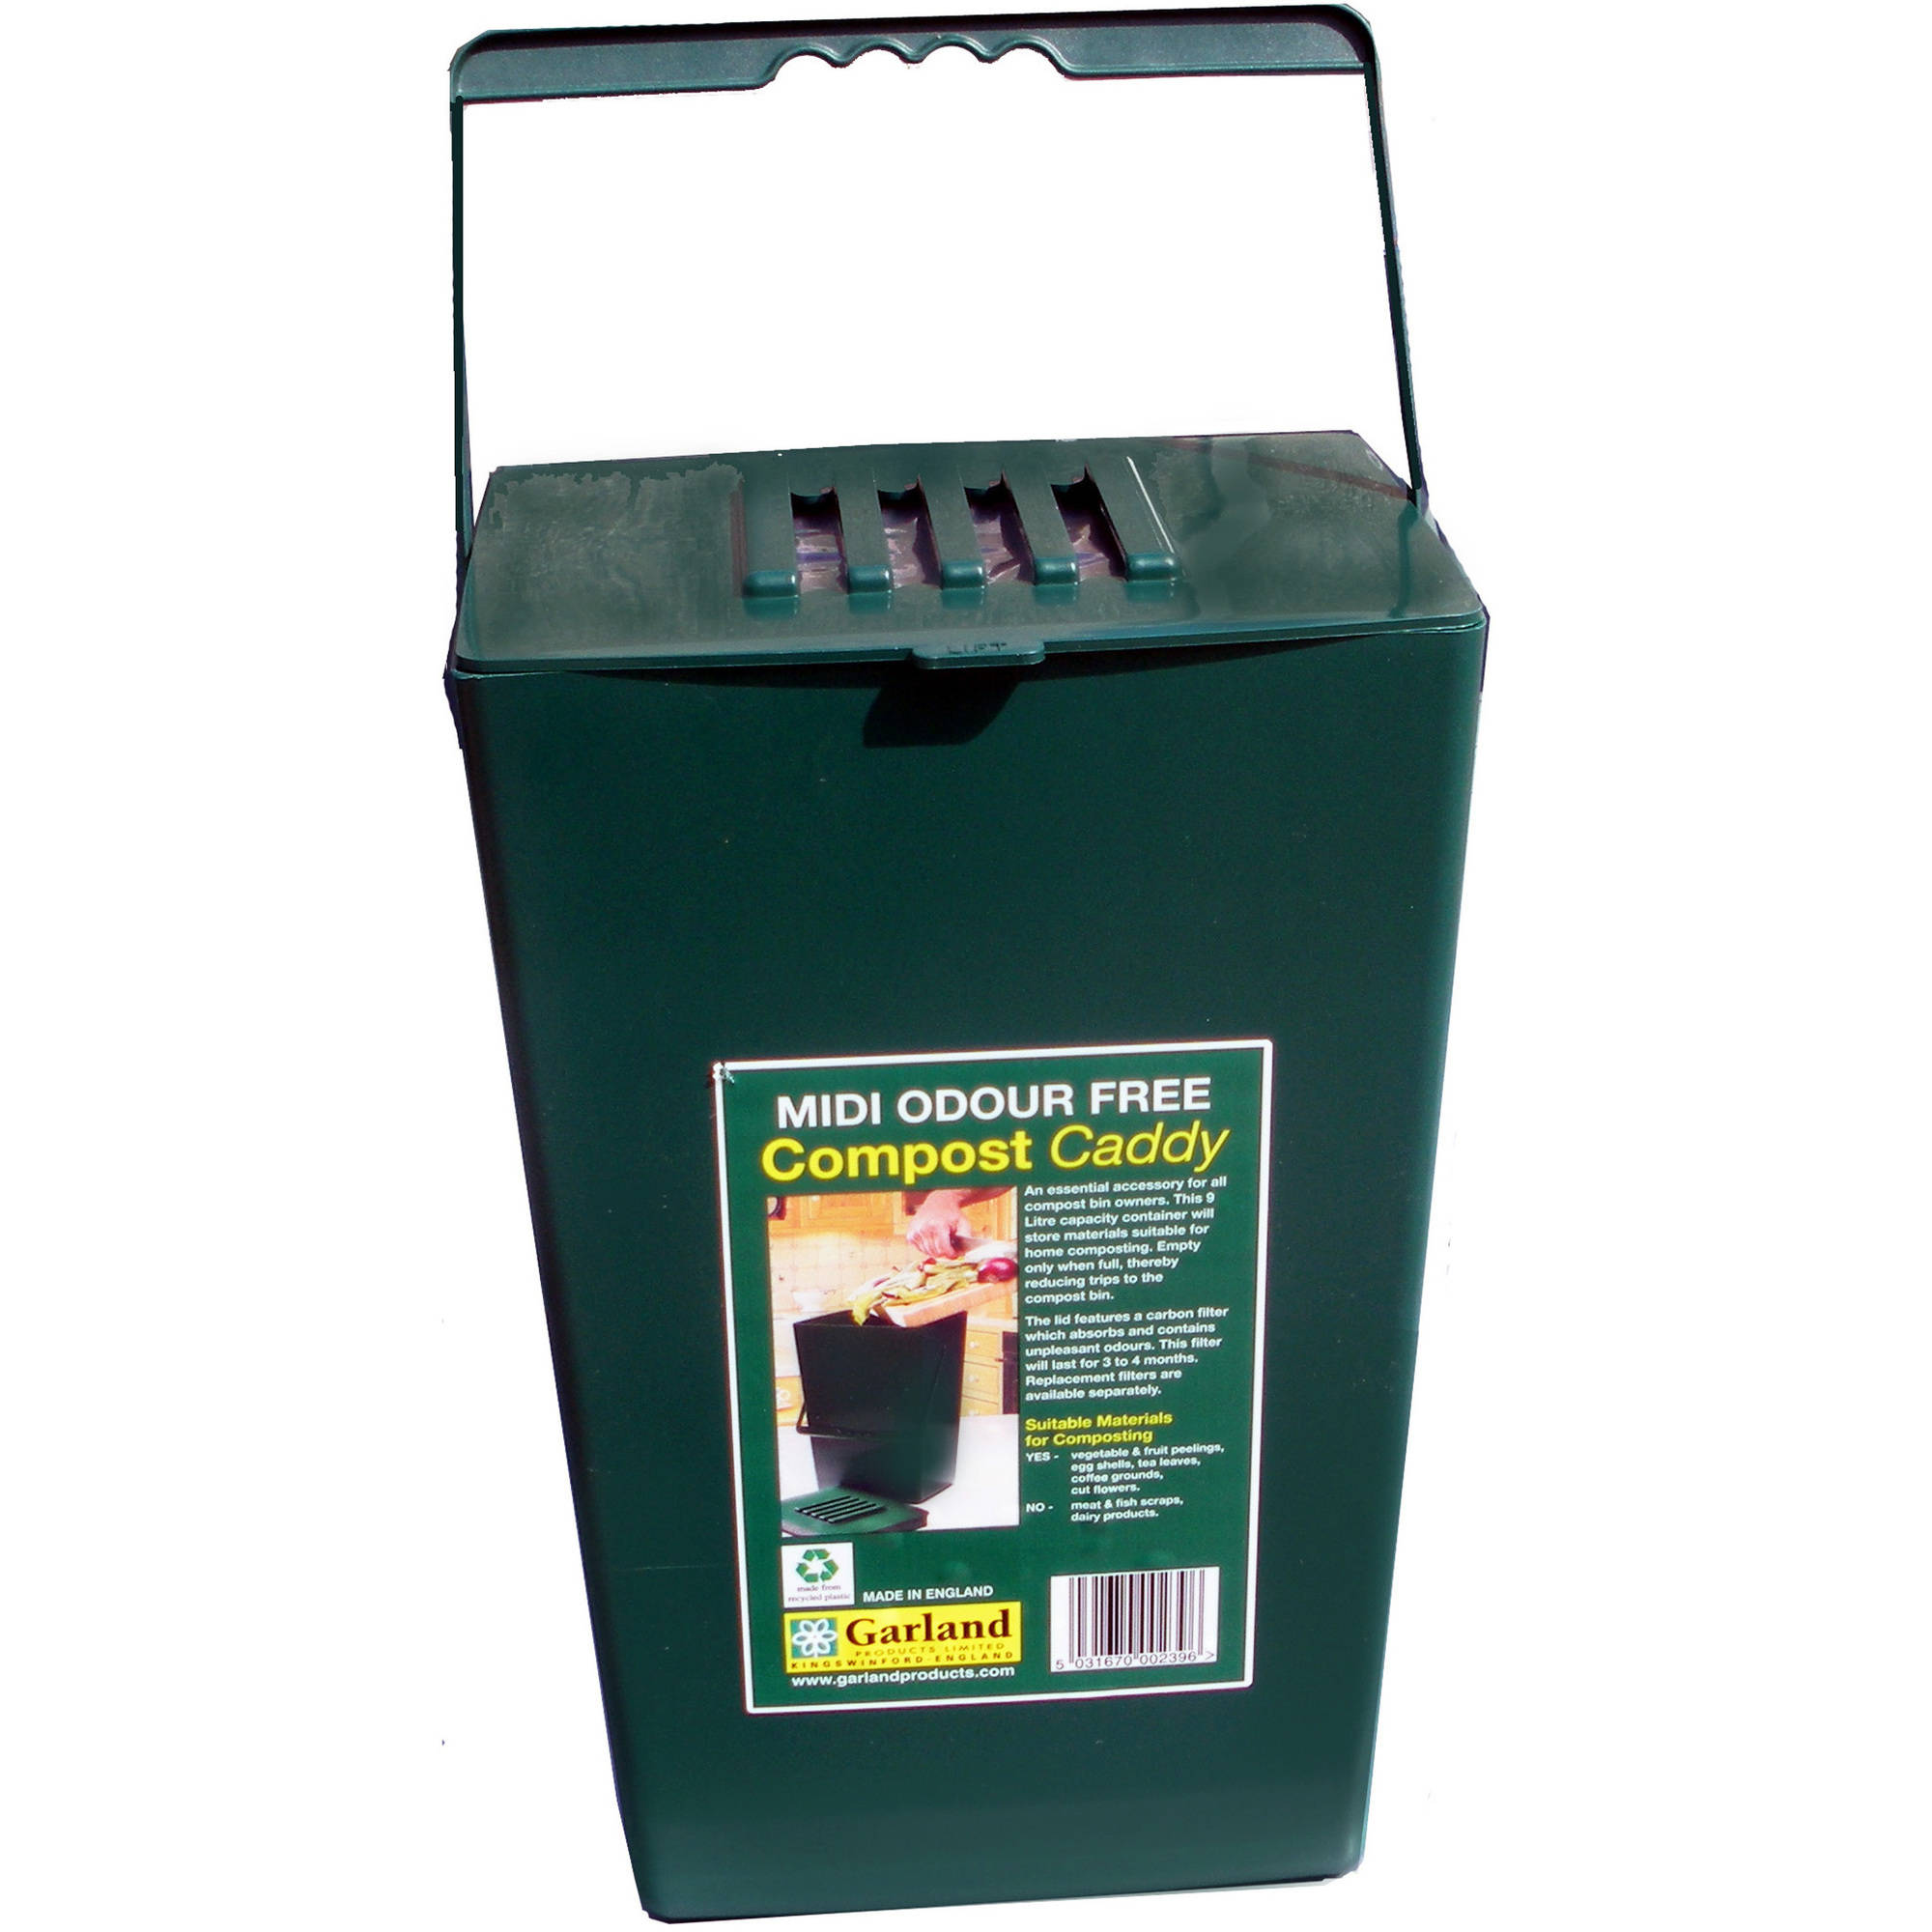 2.4-Gallon Kitchen Compost Bin with Free Carbon Filter to Eliminate Odor by GARLAND